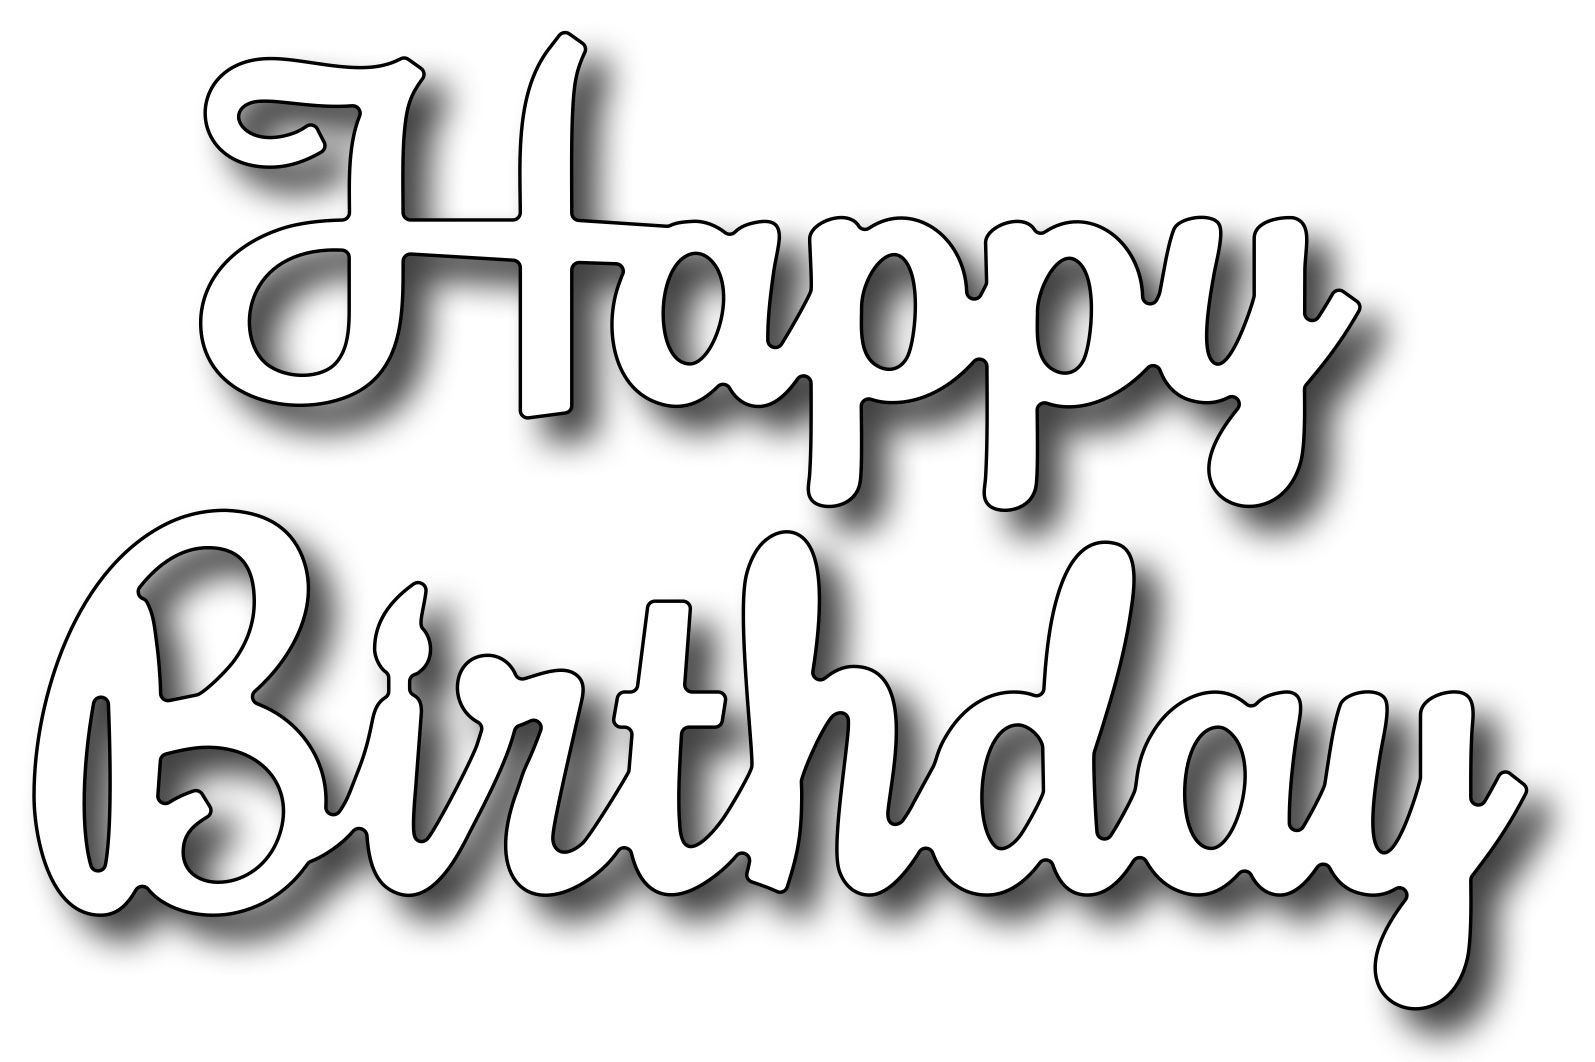 happy birthday diva quotes ; happy-birthday-diva-quotes-lovely-frantic-stamper-happenings-of-happy-birthday-diva-quotes